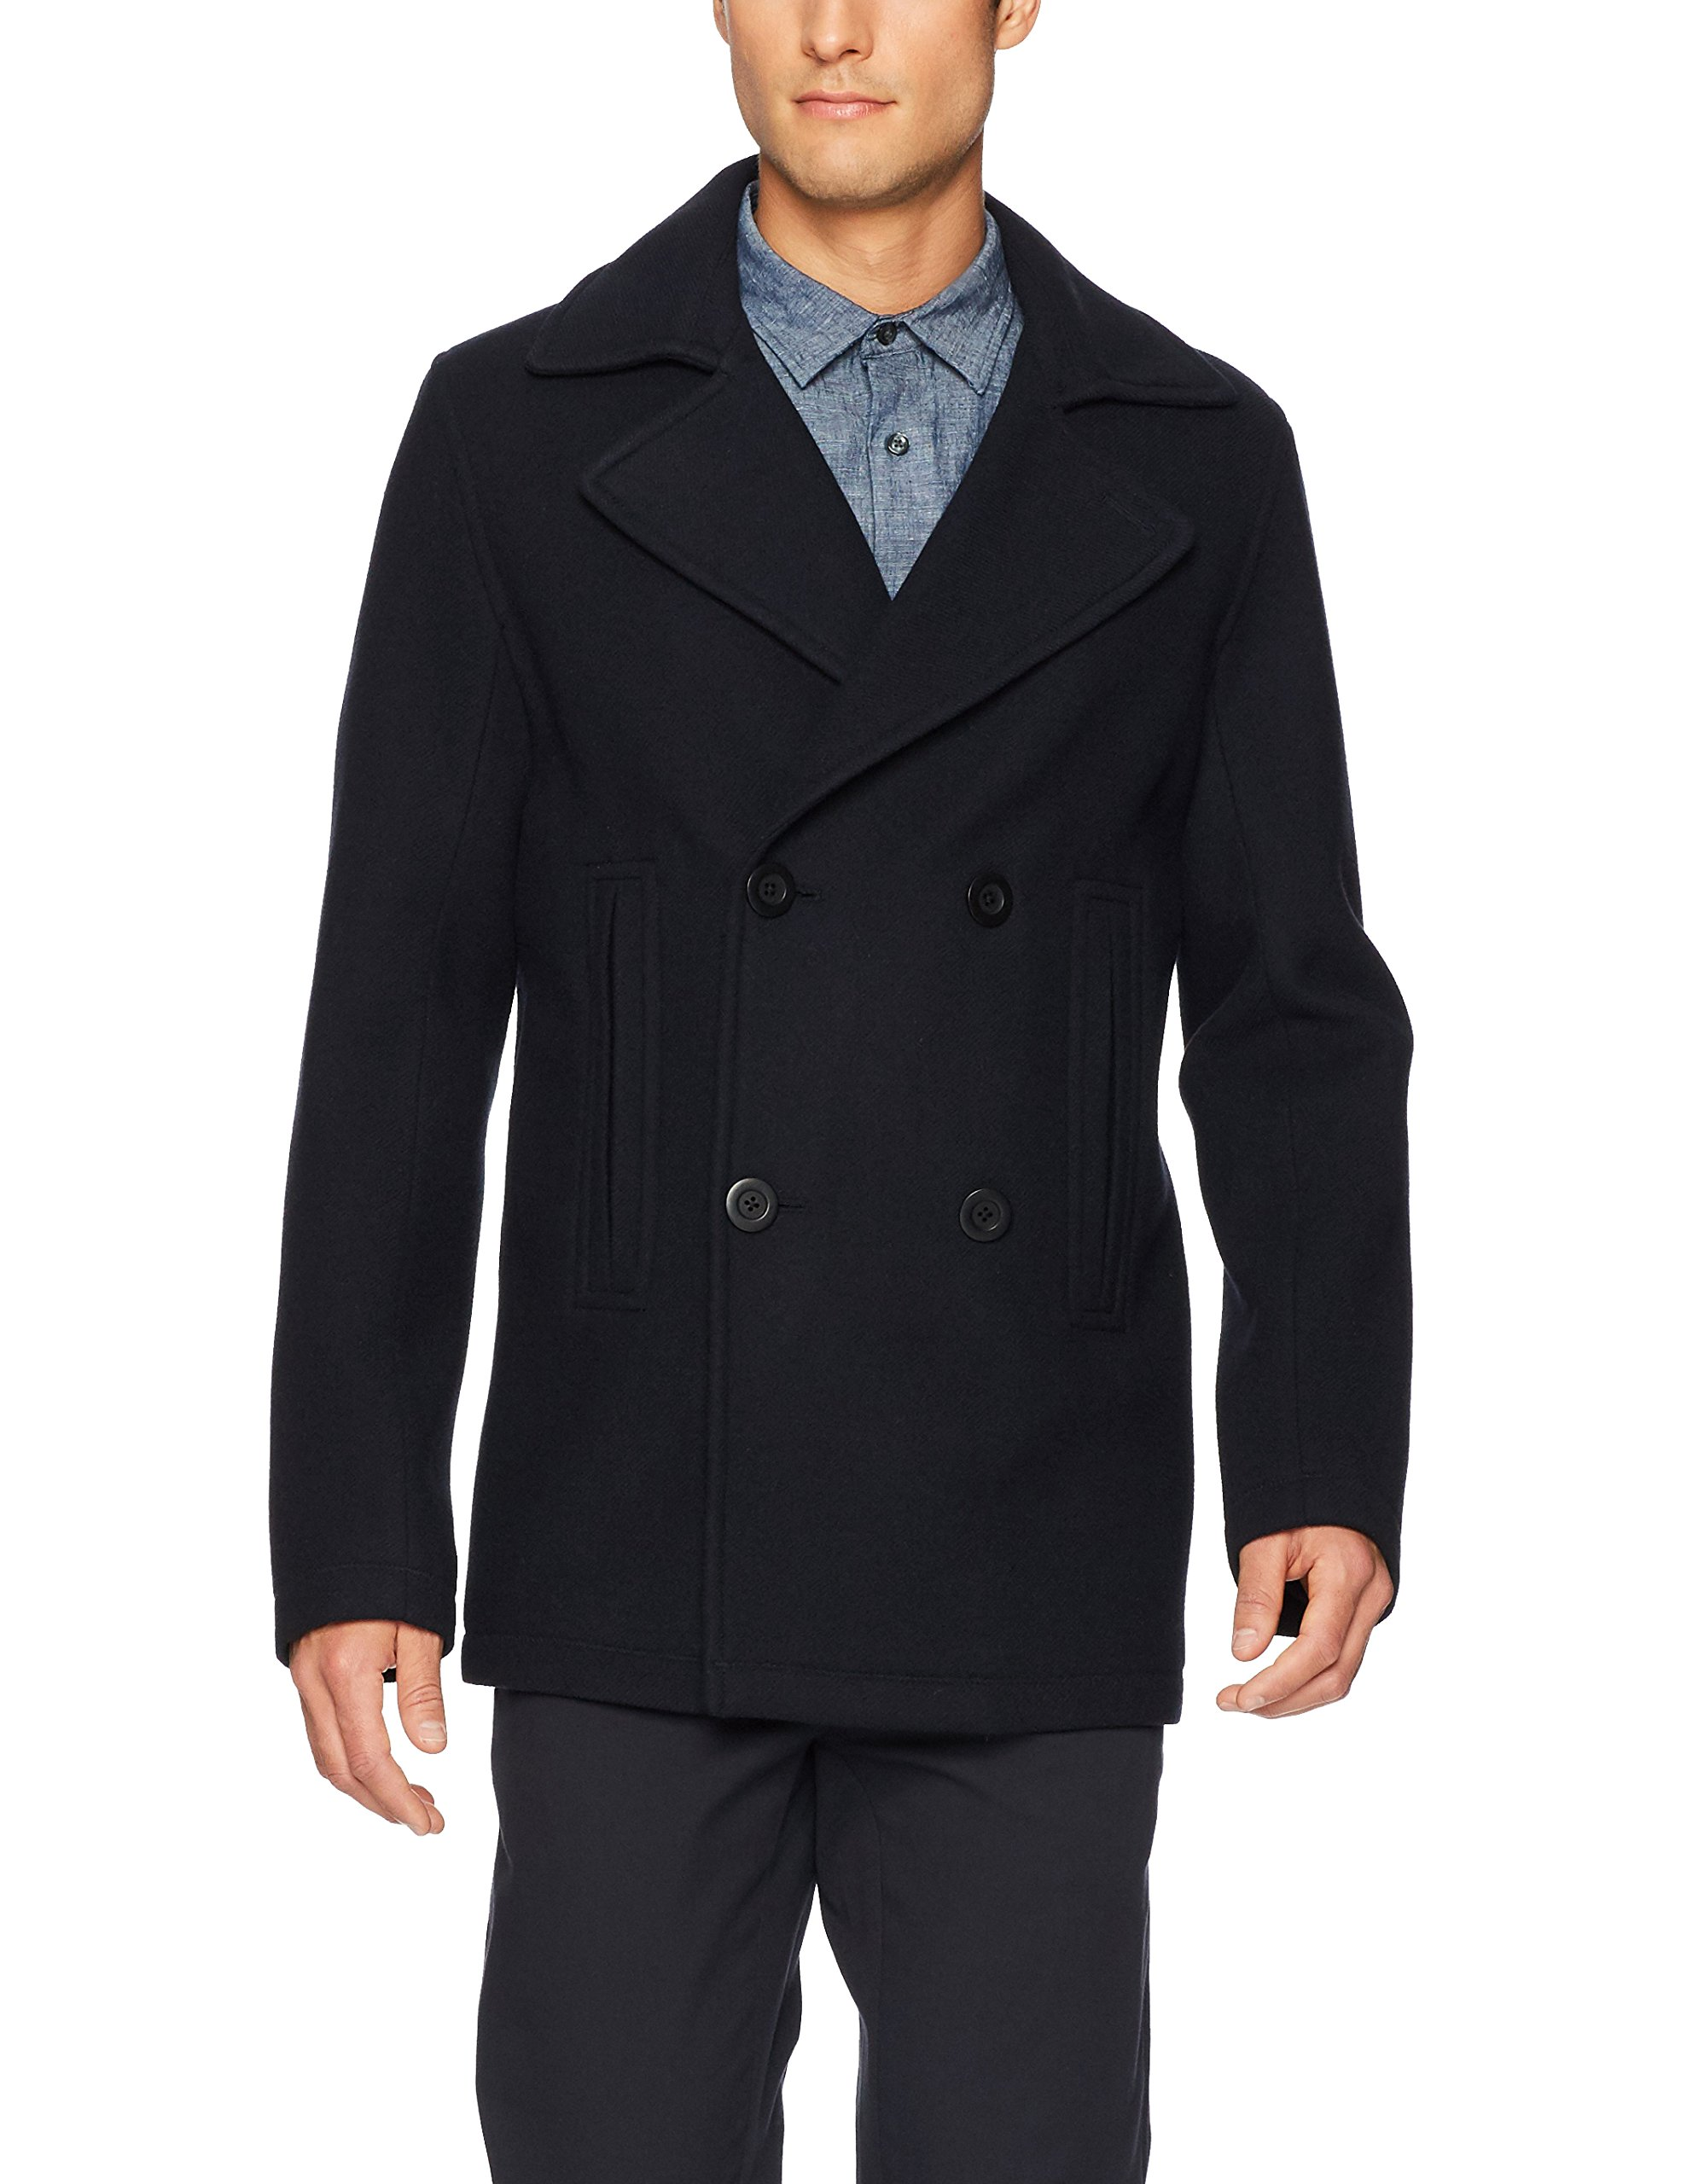 Vince Men's Bonded Double Breasted Peacoat, Coastal, L